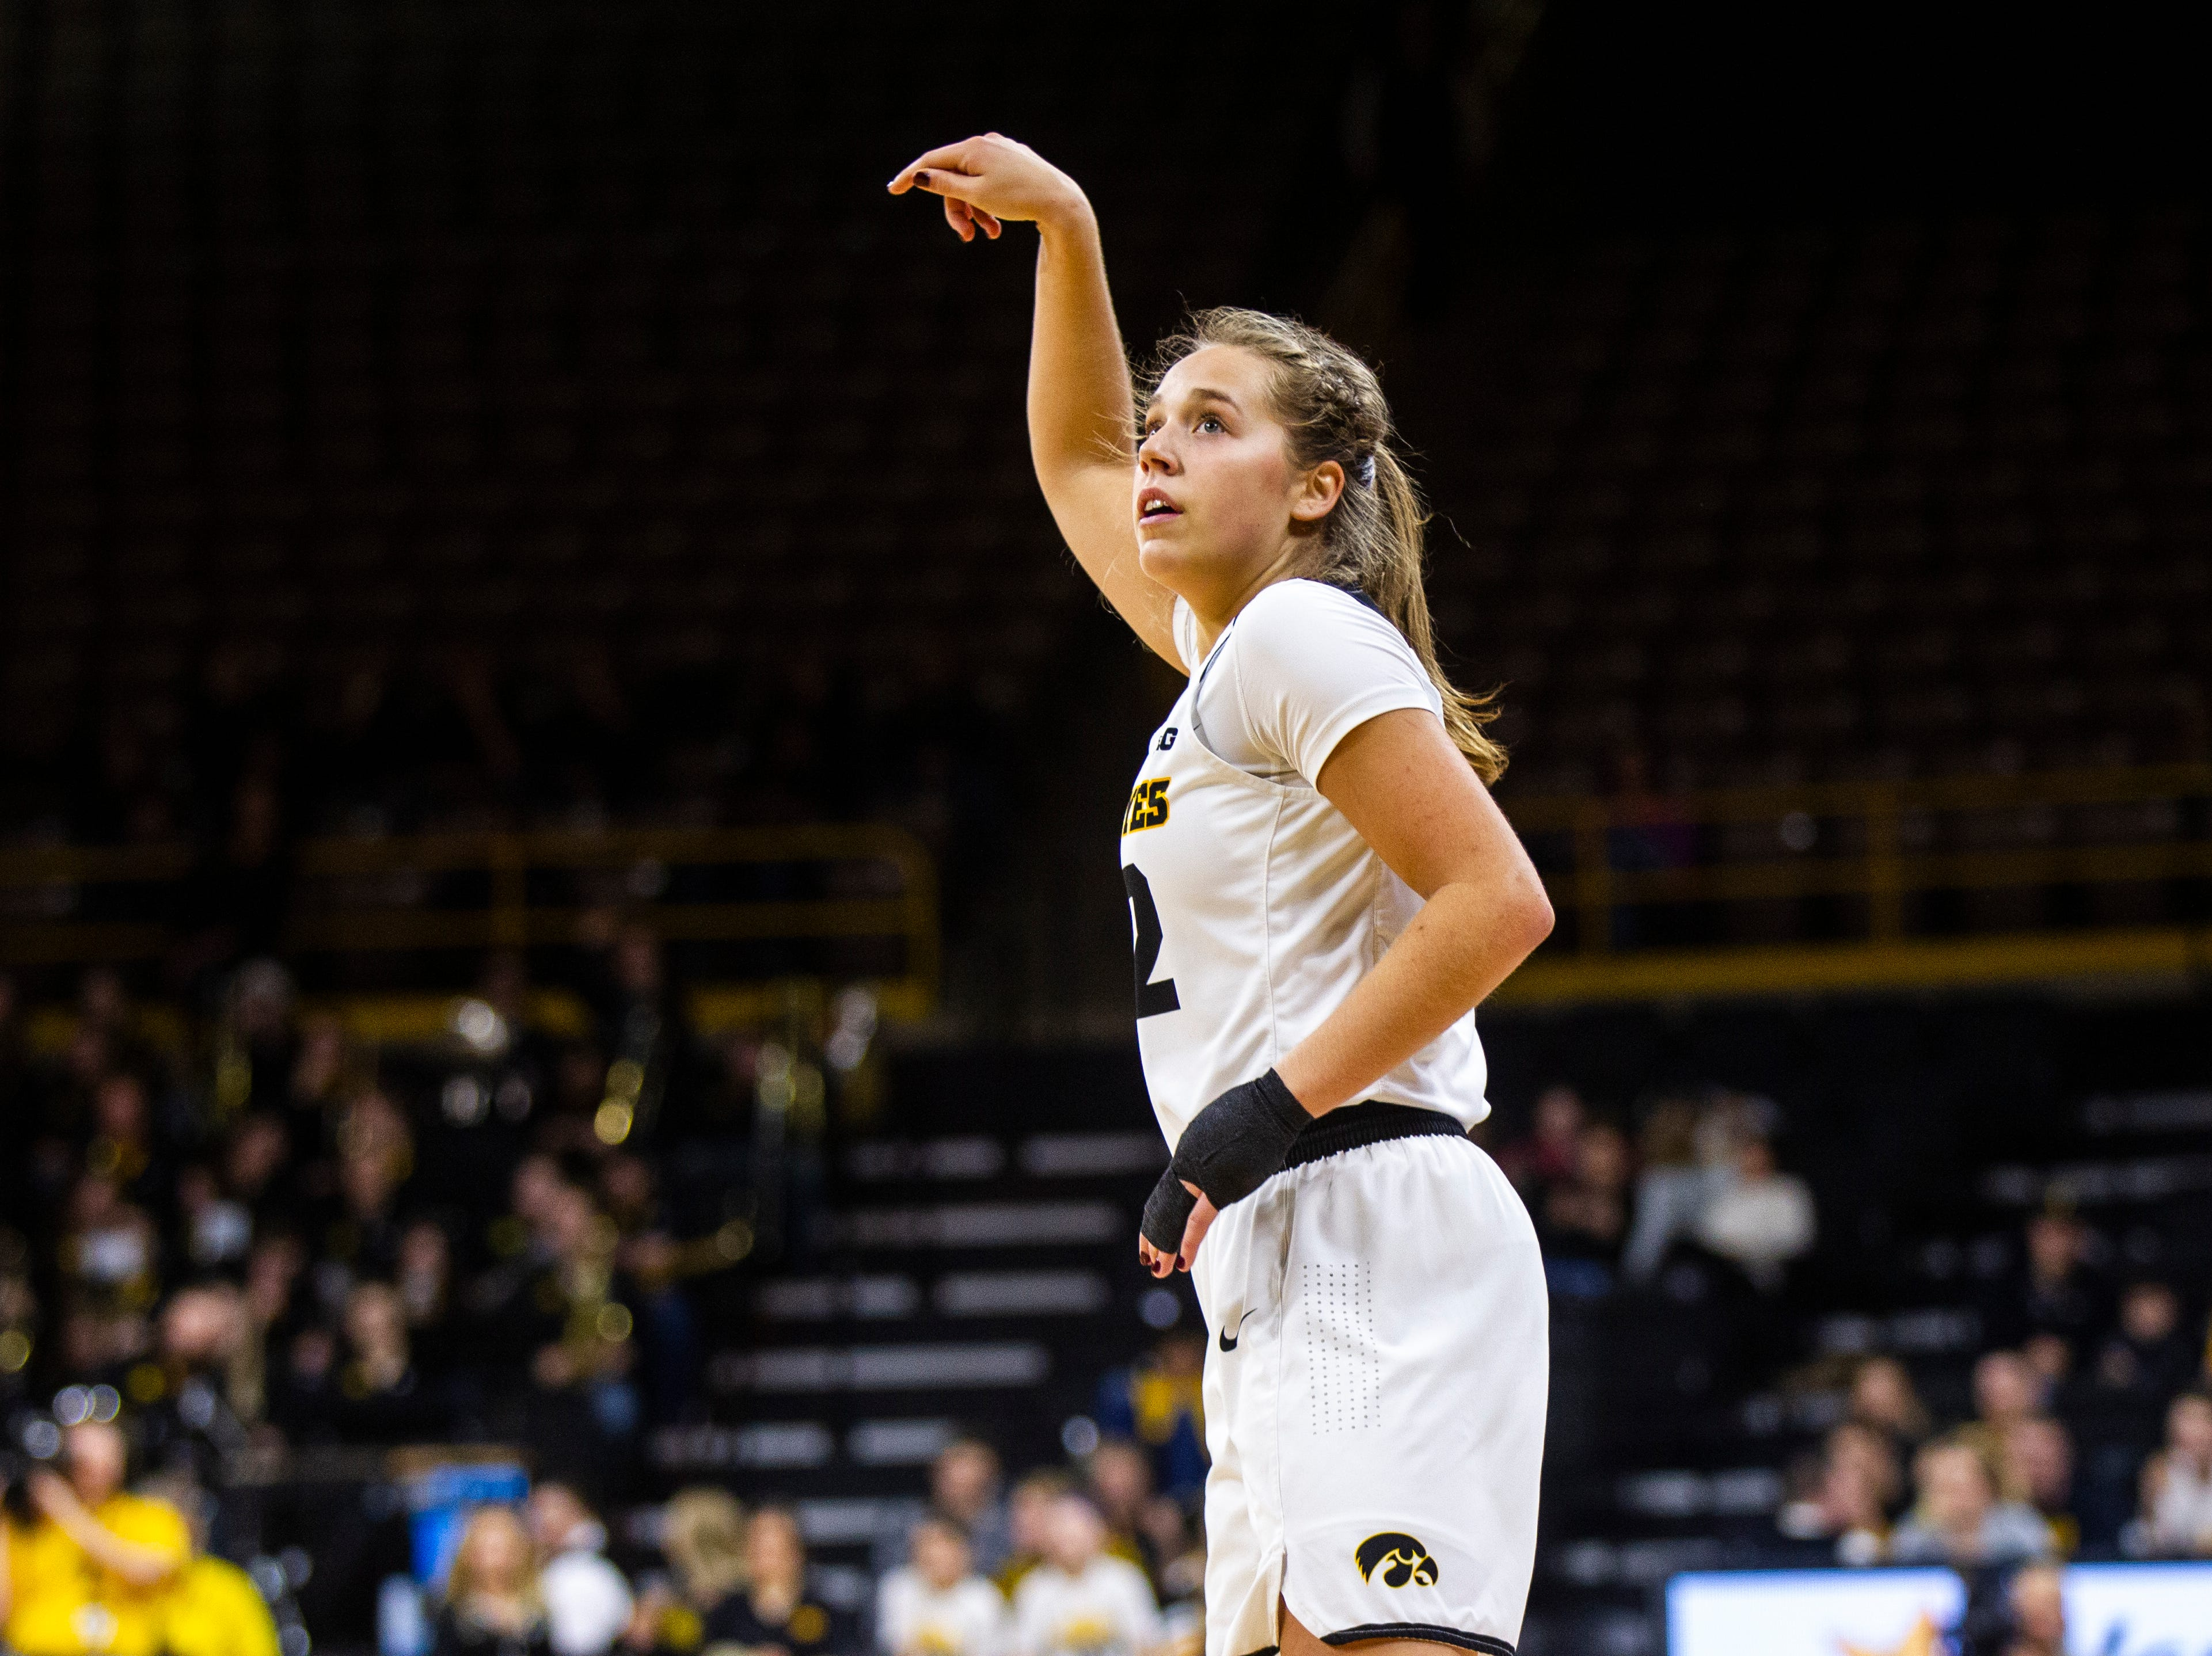 Iowa guard Kathleen Doyle (22) watches as her 3-point shot lands during a NCAA women's basketball game on Sunday, Dec. 16, 2018, at Carver-Hawkeye Arena in Iowa City.